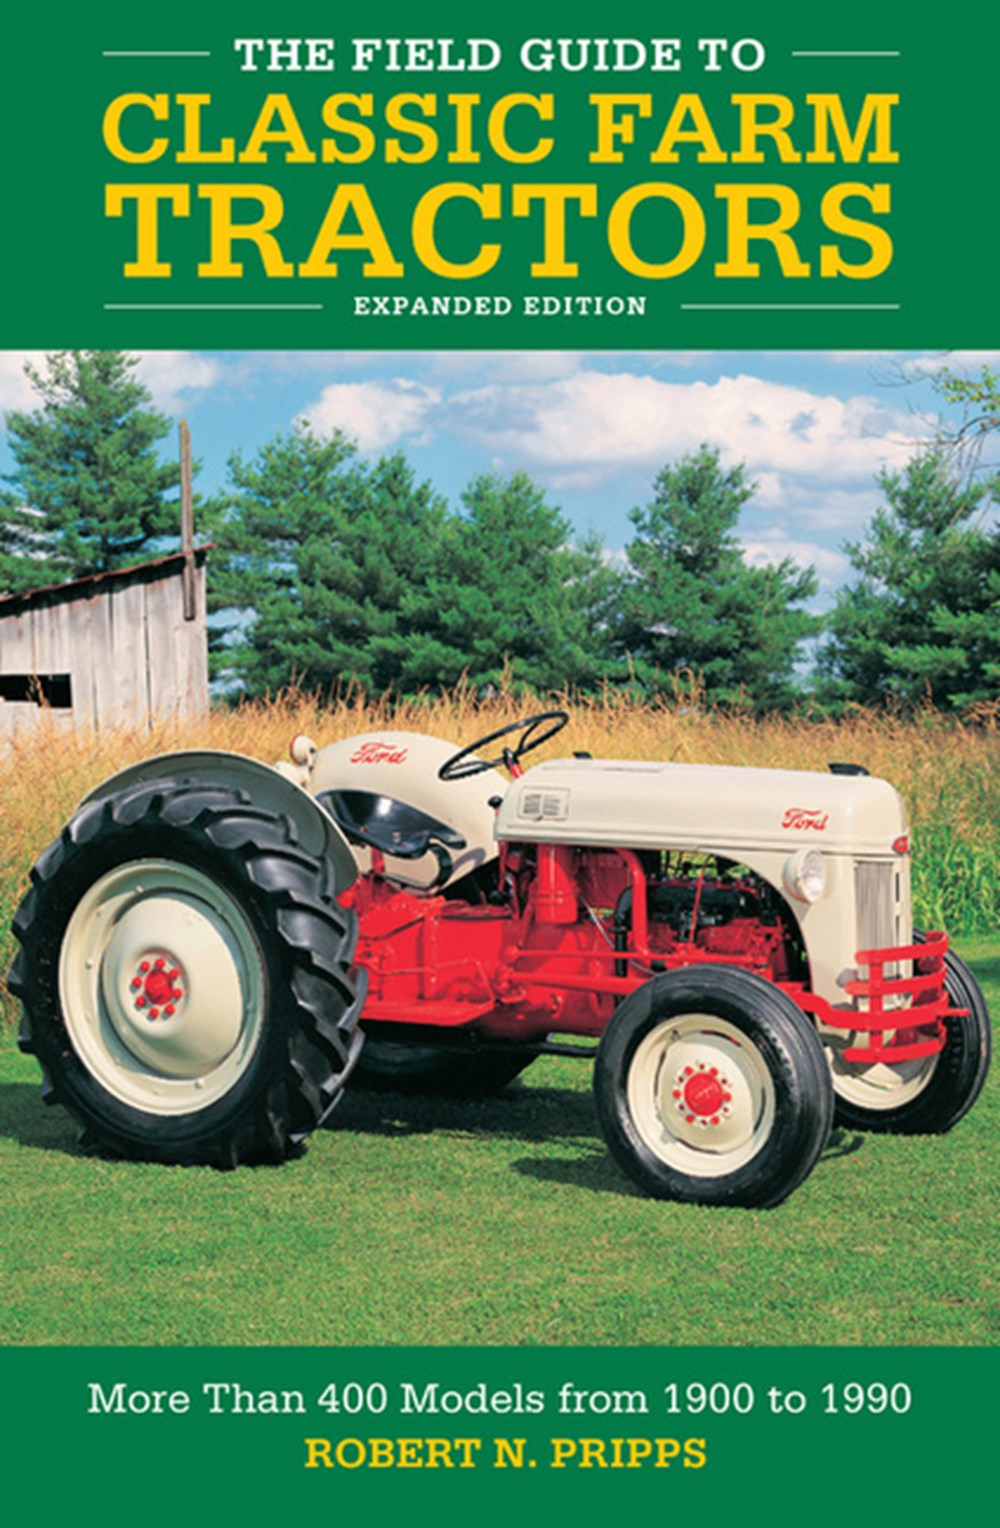 Field Guide to Classic Farm Tractors, Expanded Edition More Than 400 Models from 1900 to 1990